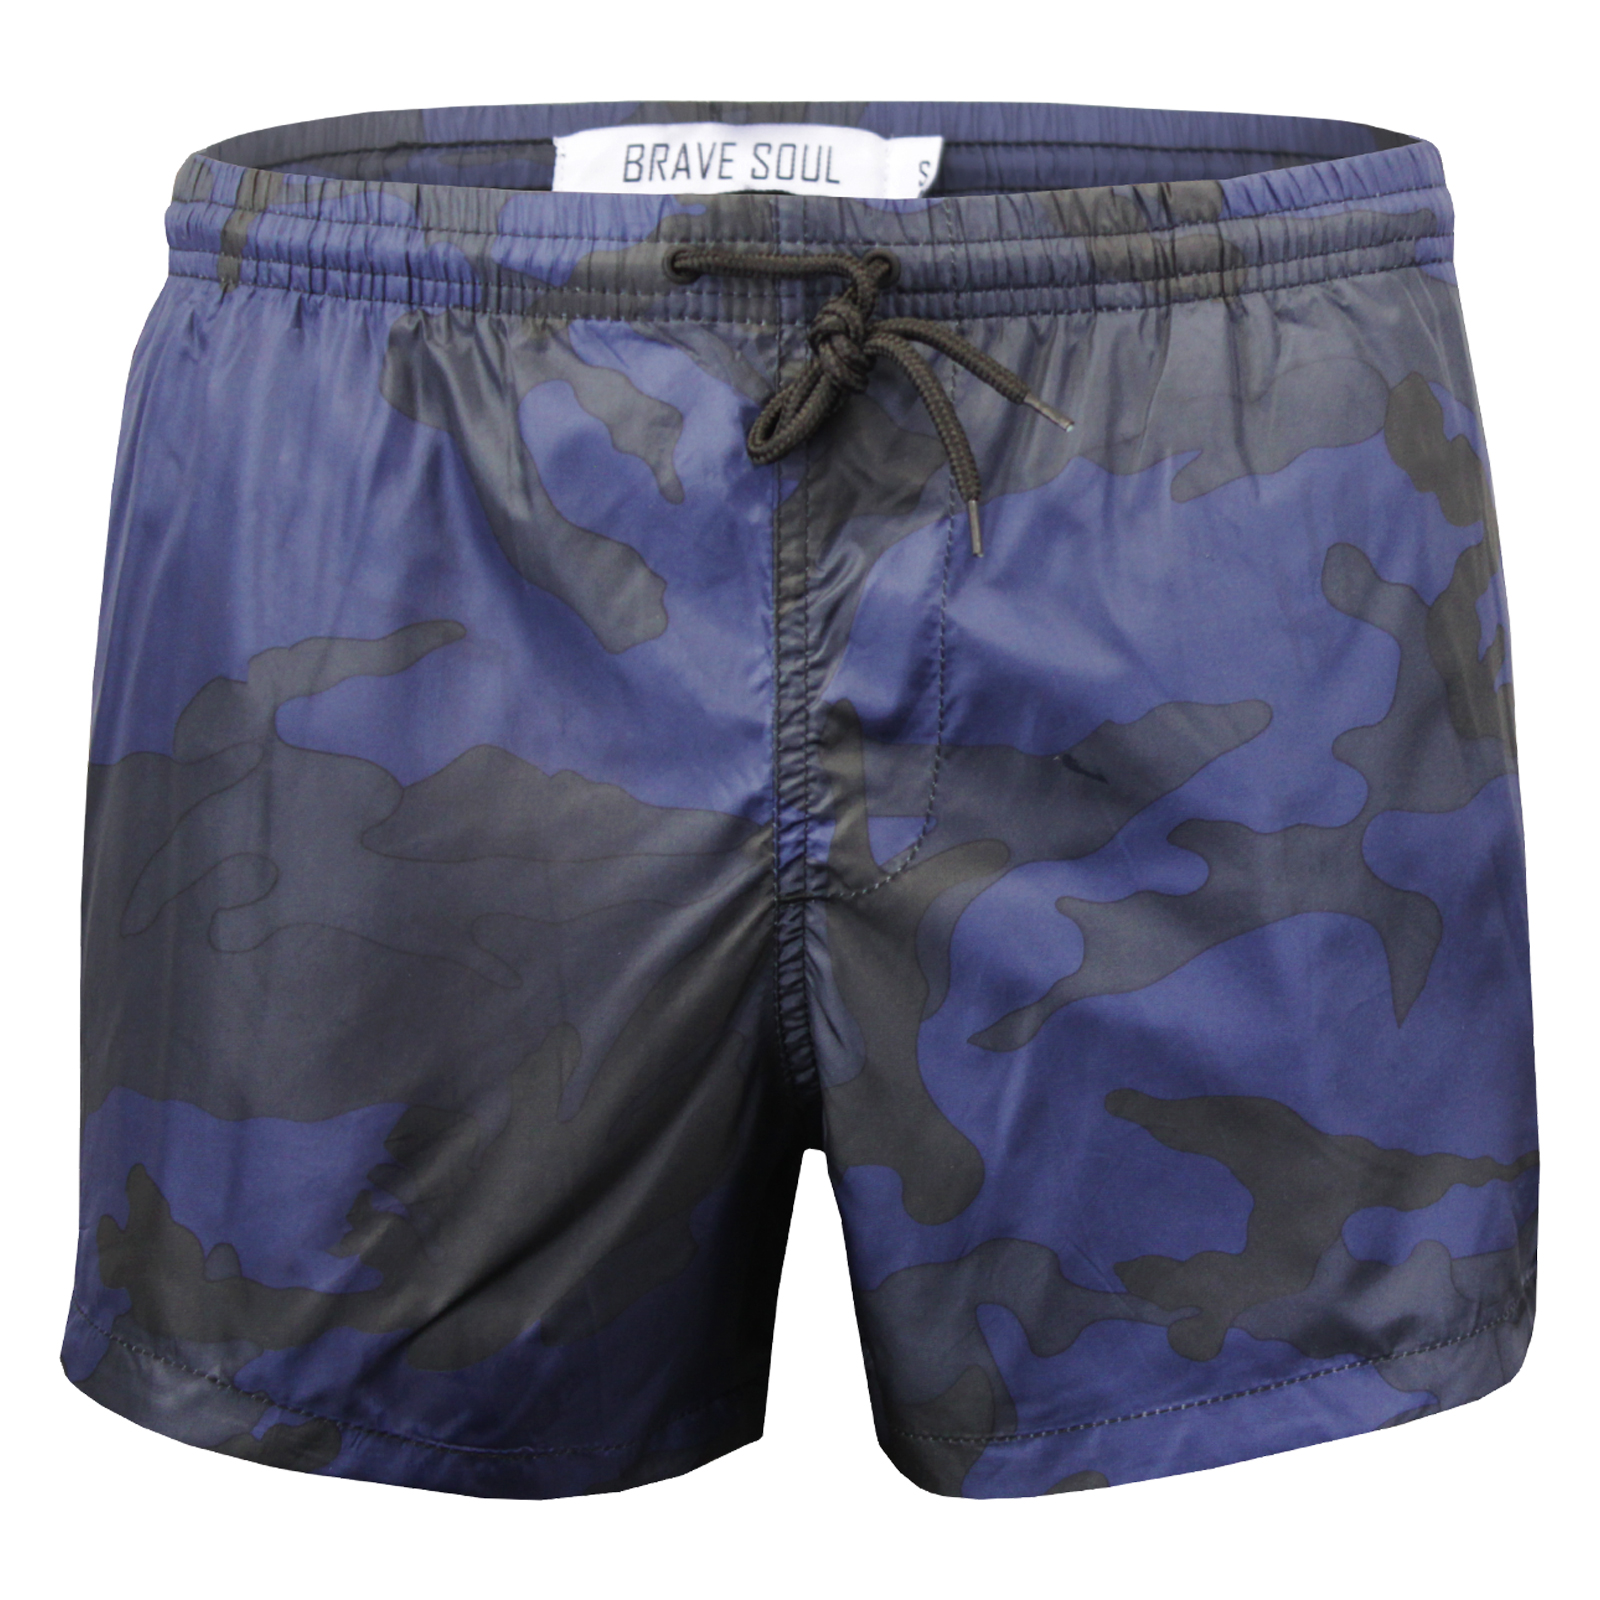 7217be5a11c3 Mens Brave Soul Short Leg Swim Shorts Camo Print Beach Wear New ...